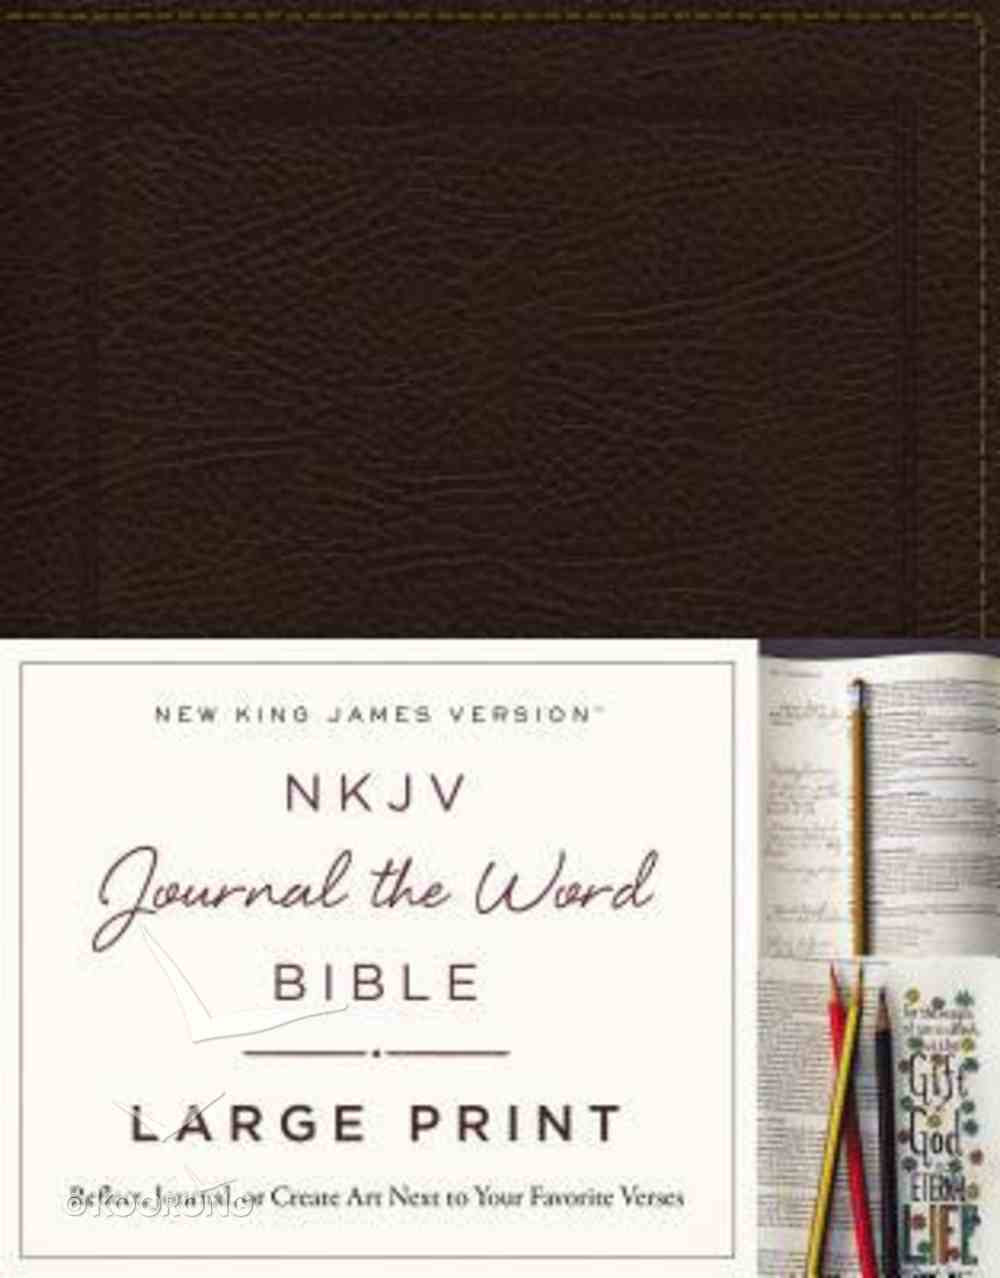 NKJV Journal the Word Bible Large Print Brown (Red Letter Edition) Bonded Leather